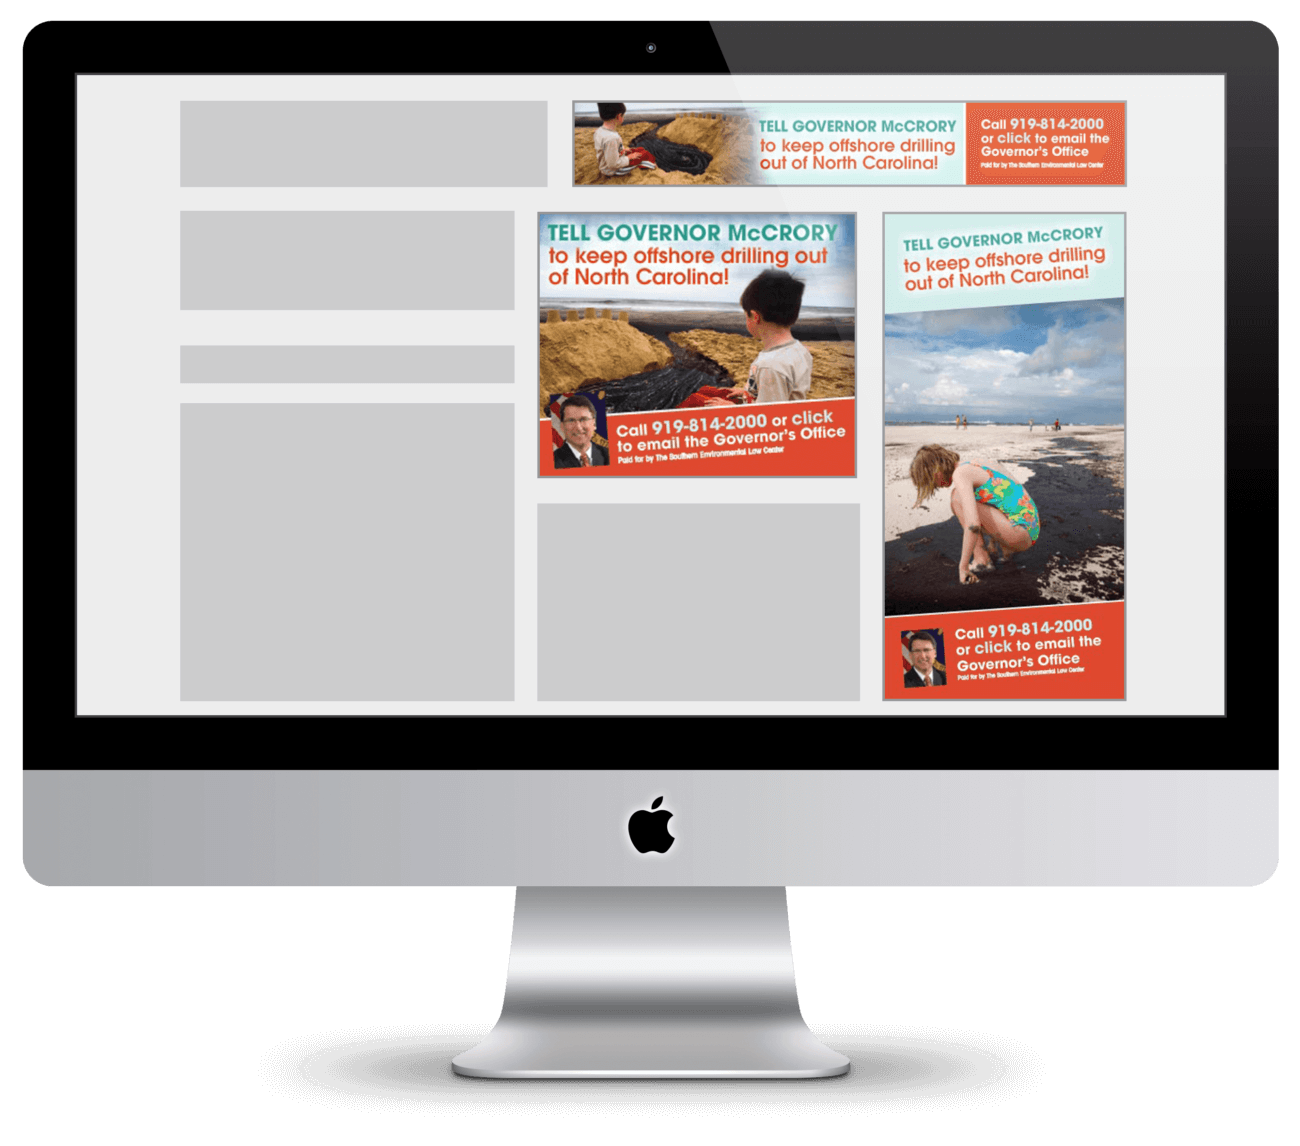 SELC_offshore-drilling_web-Ads_imac